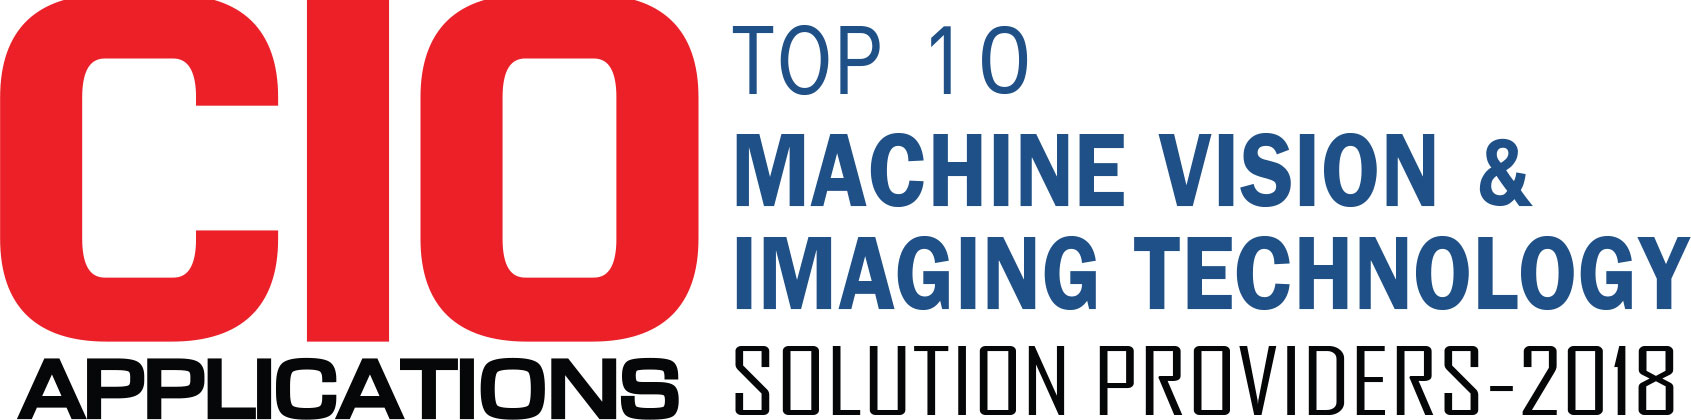 Top 10 Companies Providing Machine Vision and Imaging Technology Solution - 2018